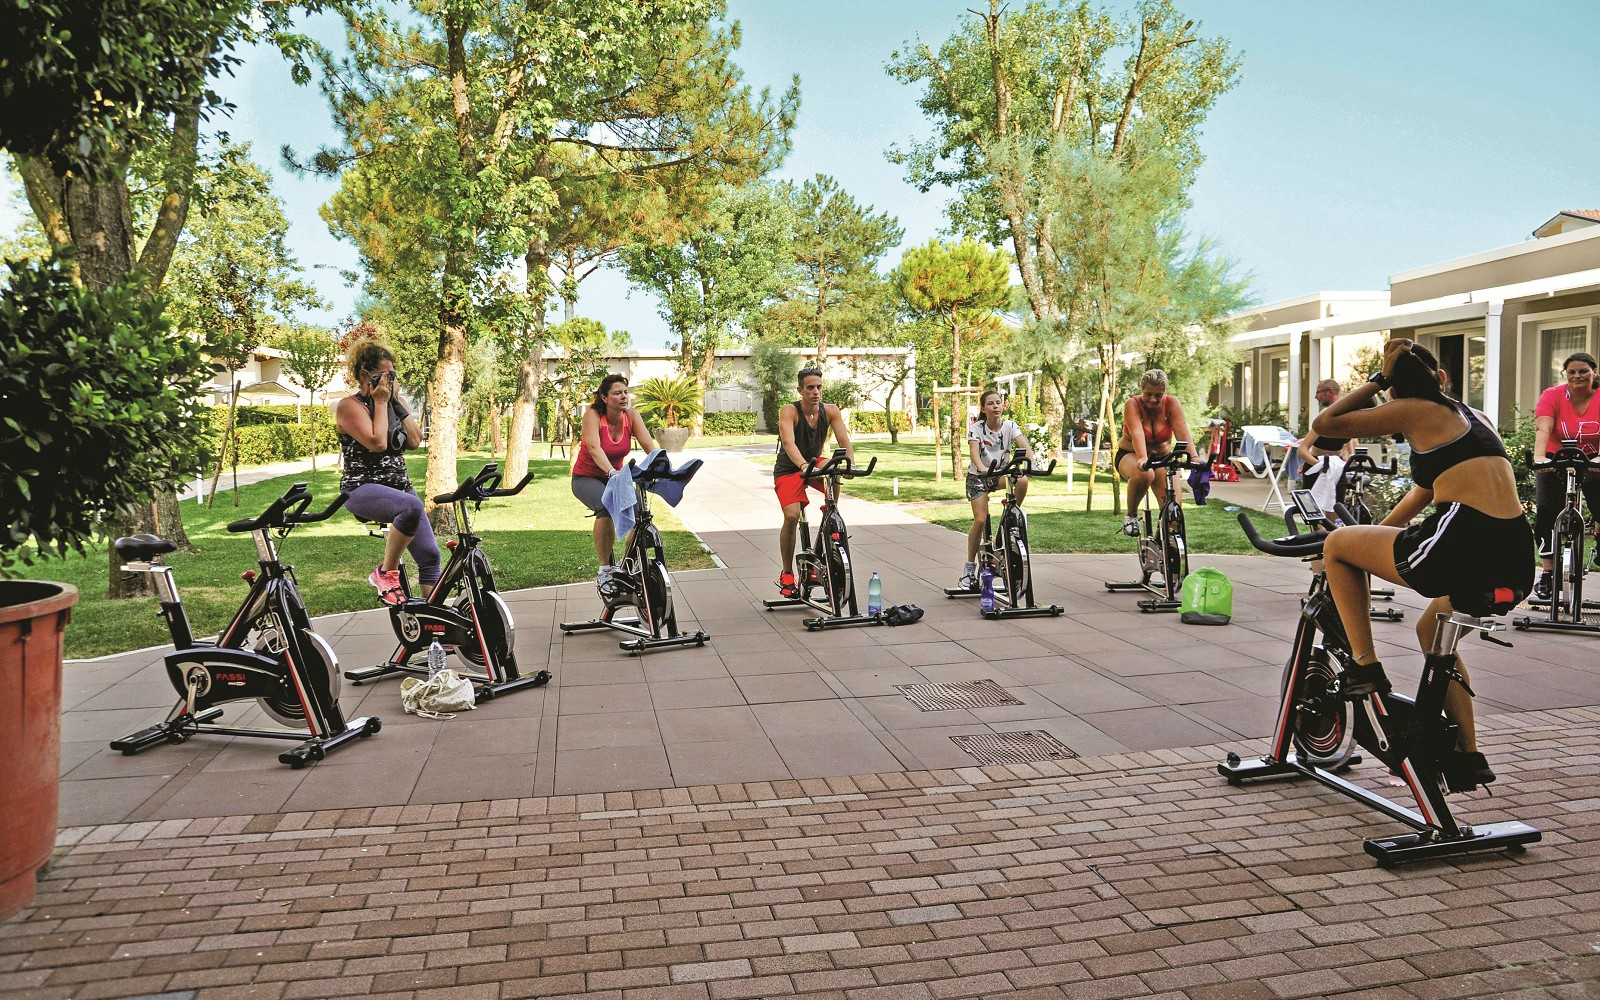 04-Sport-Spinning-Park-Gallanti